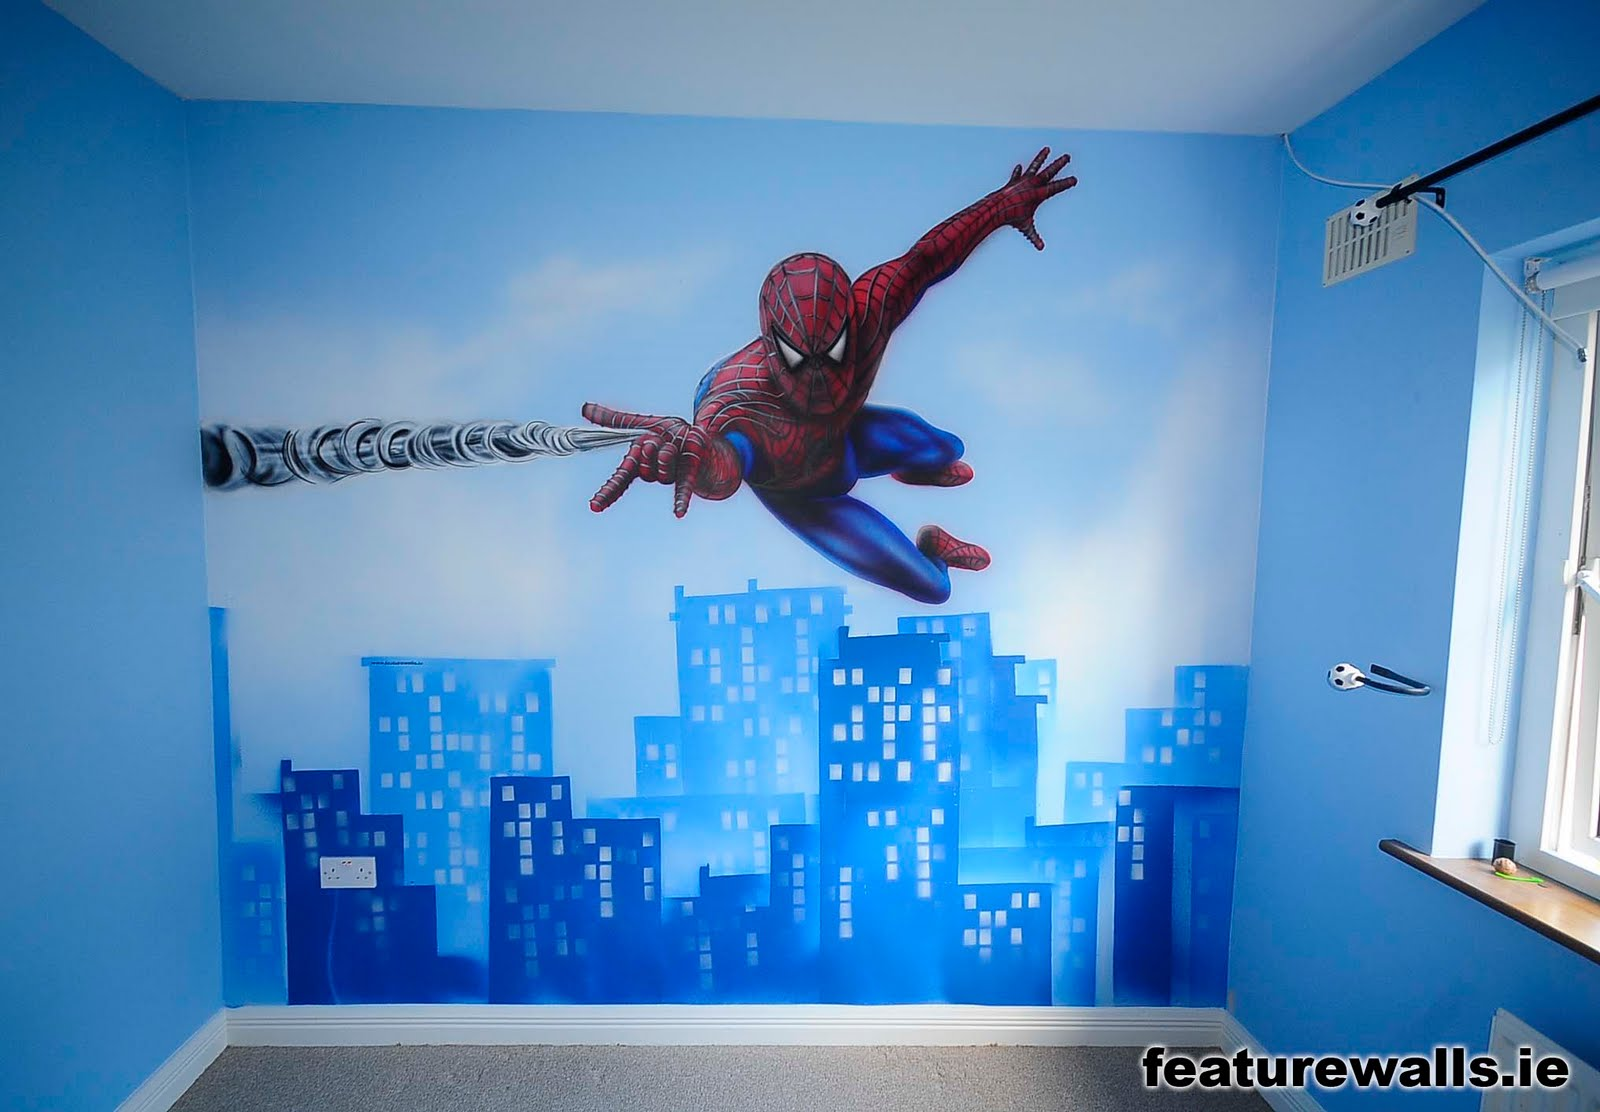 Kids bedroom painting ideas wallpress 1080p hd desktop for Children room mural